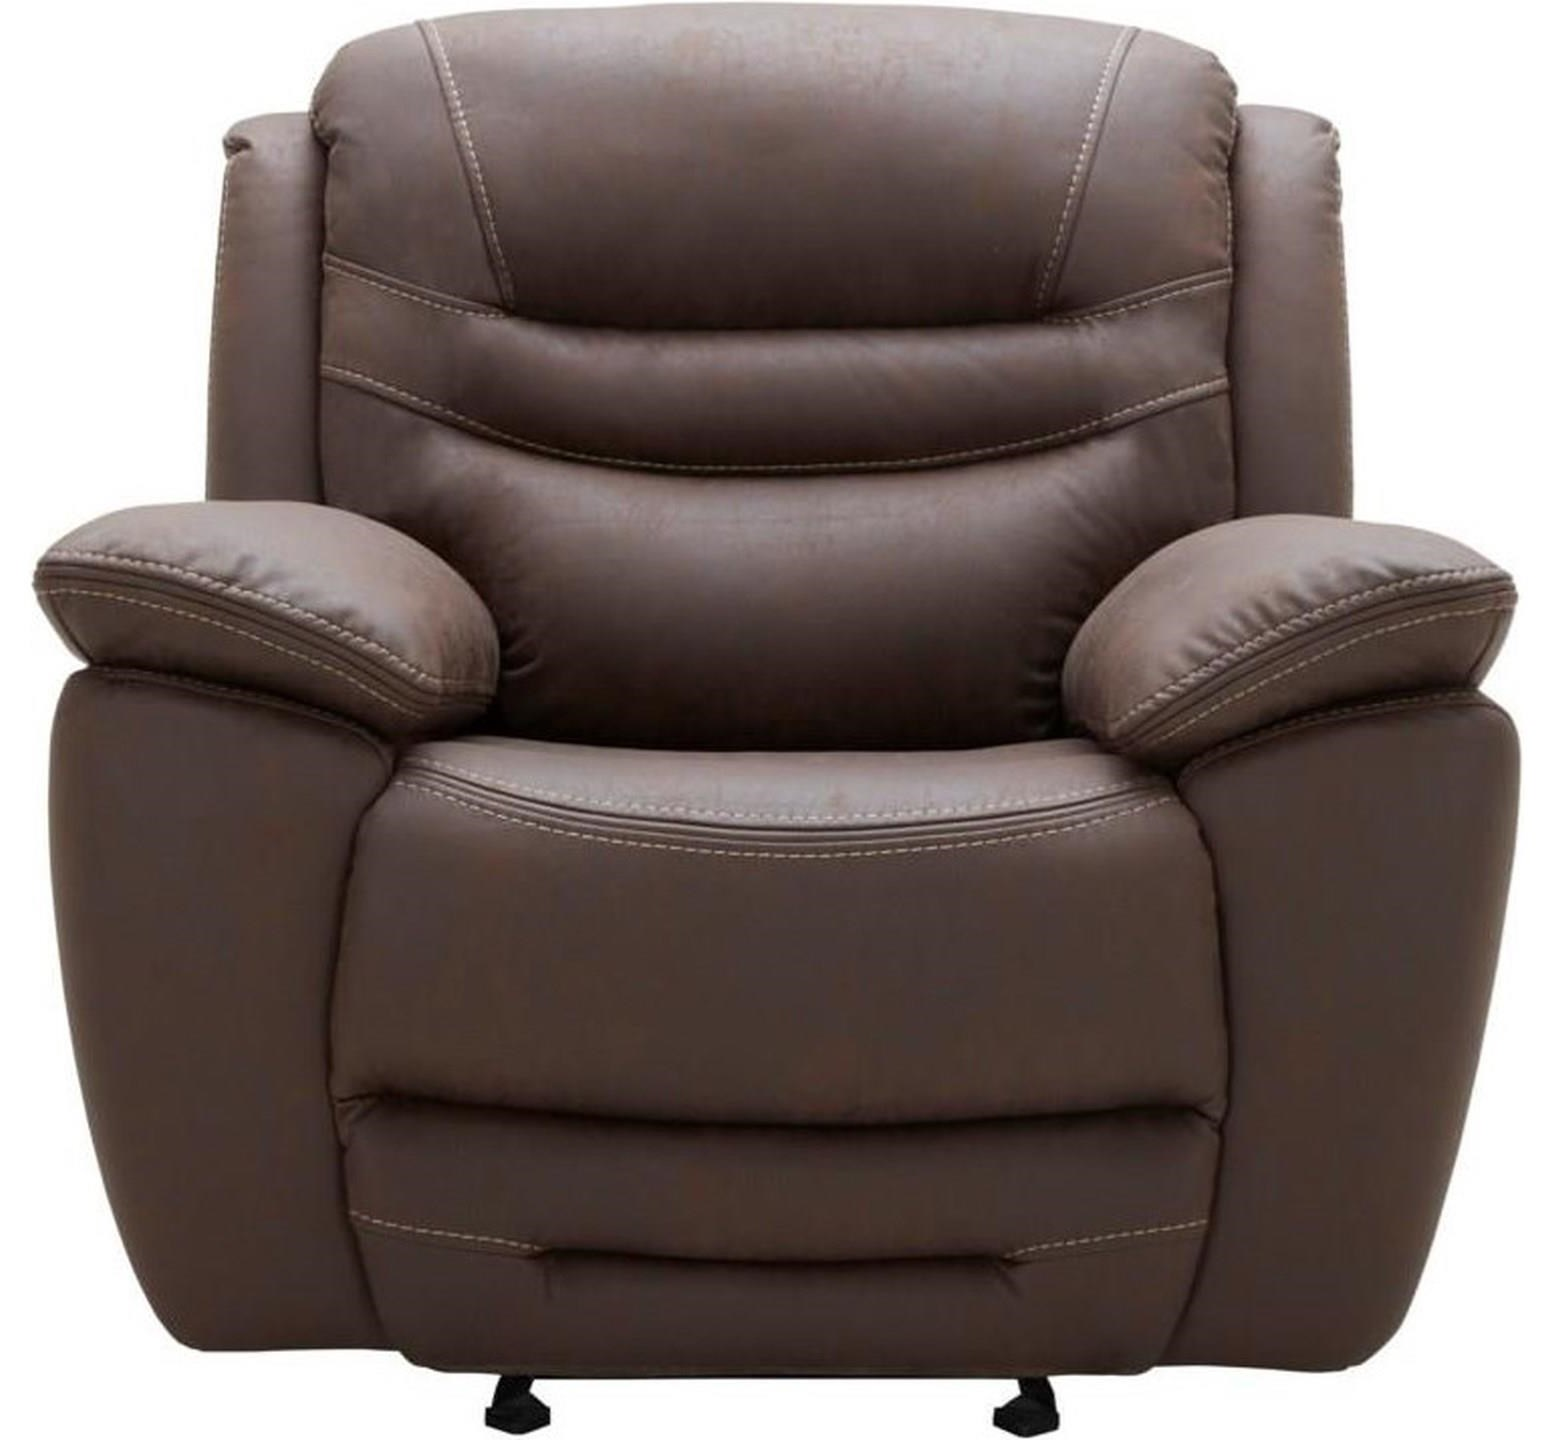 Shaffer Casual Glider Recliner by K.C. at Walker's Furniture